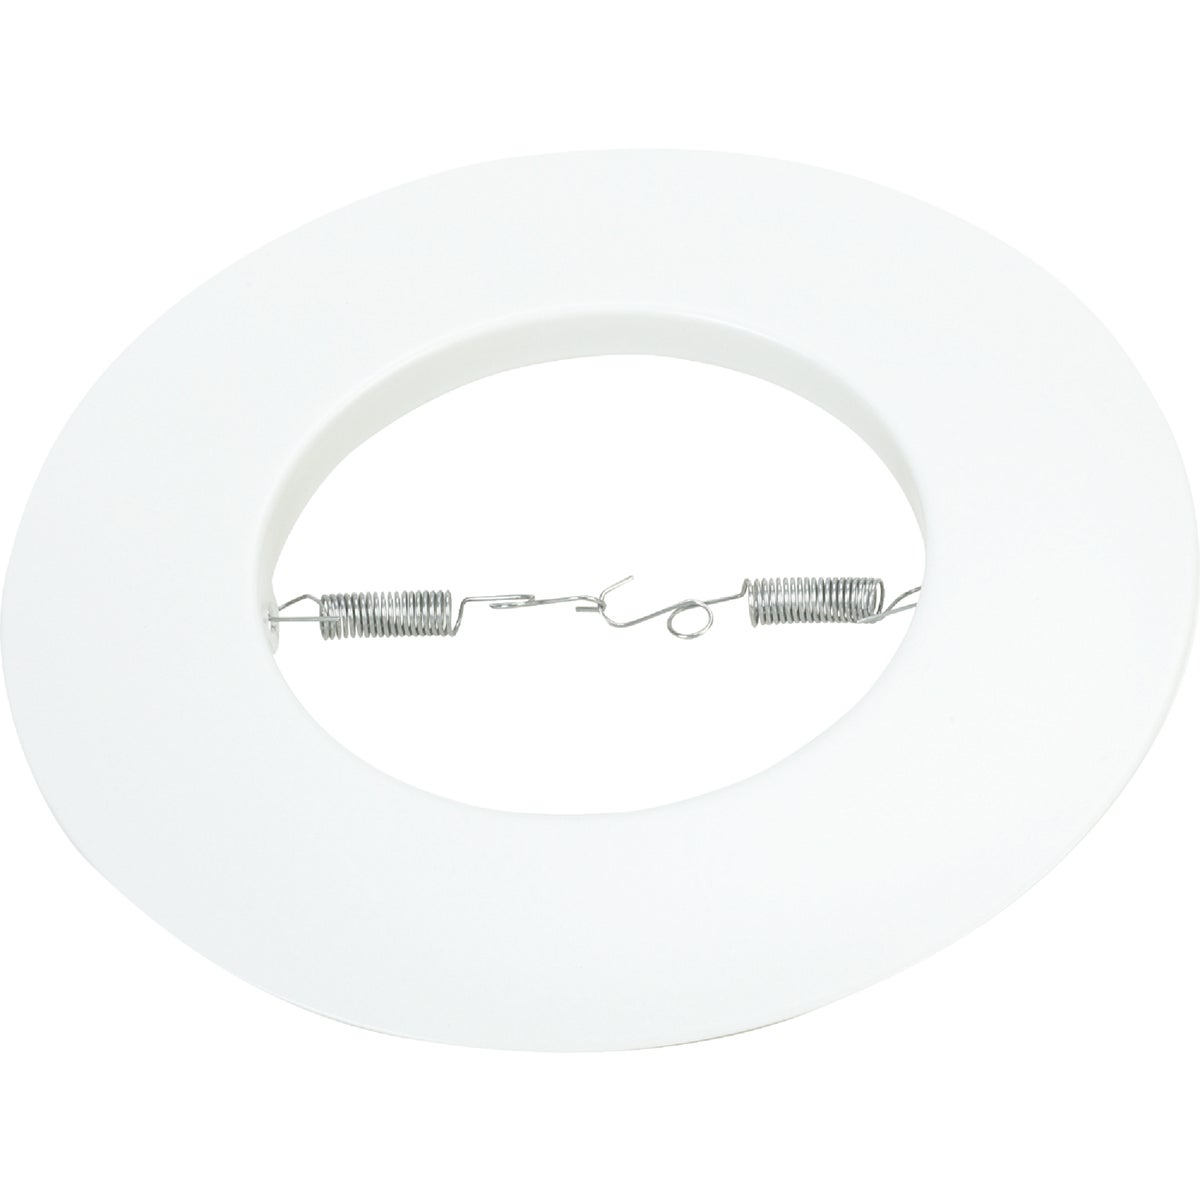 WHT RECESS FIXTURE TRIM - TR132W by Philips Consumer Lum